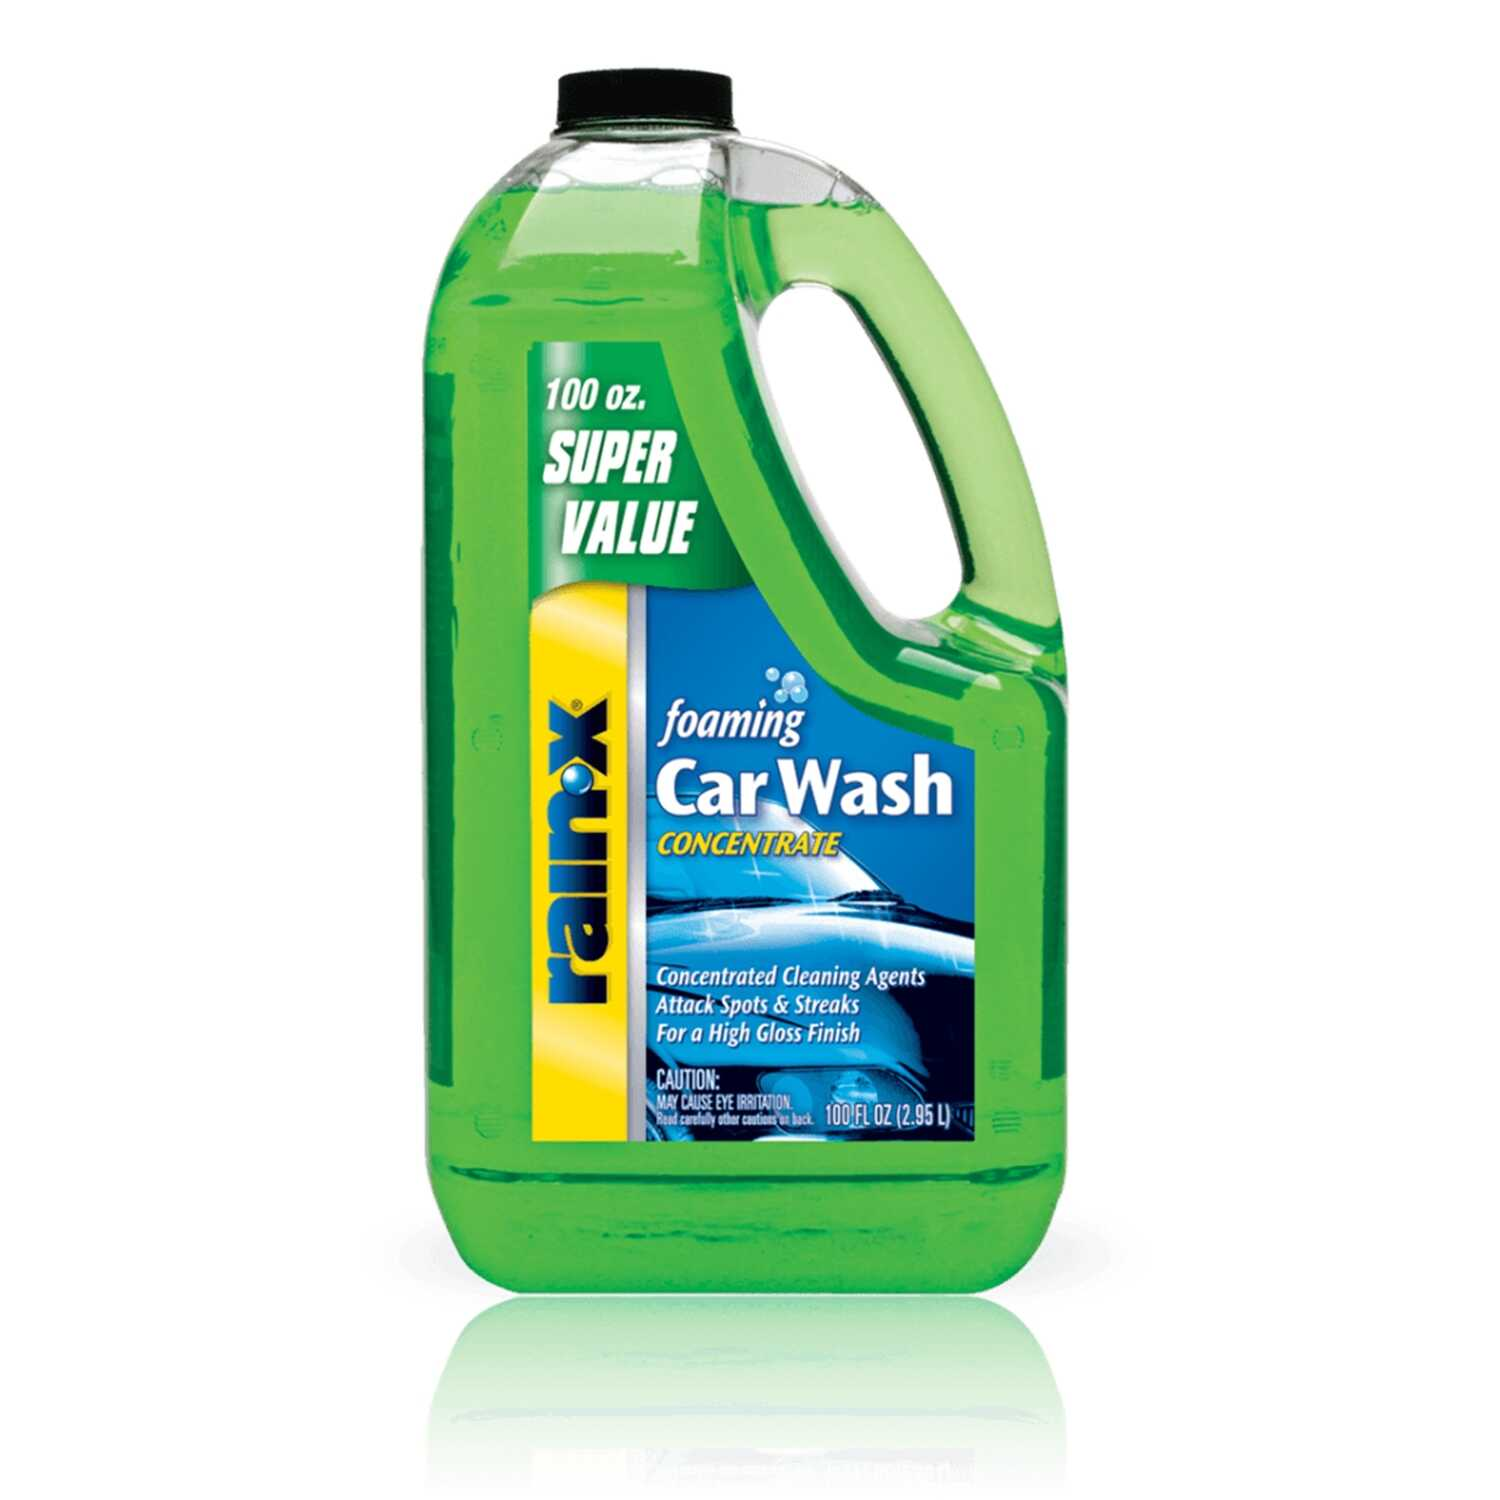 Rain-X  Concentrated Liquid  Car Wash Detergent  100 oz.